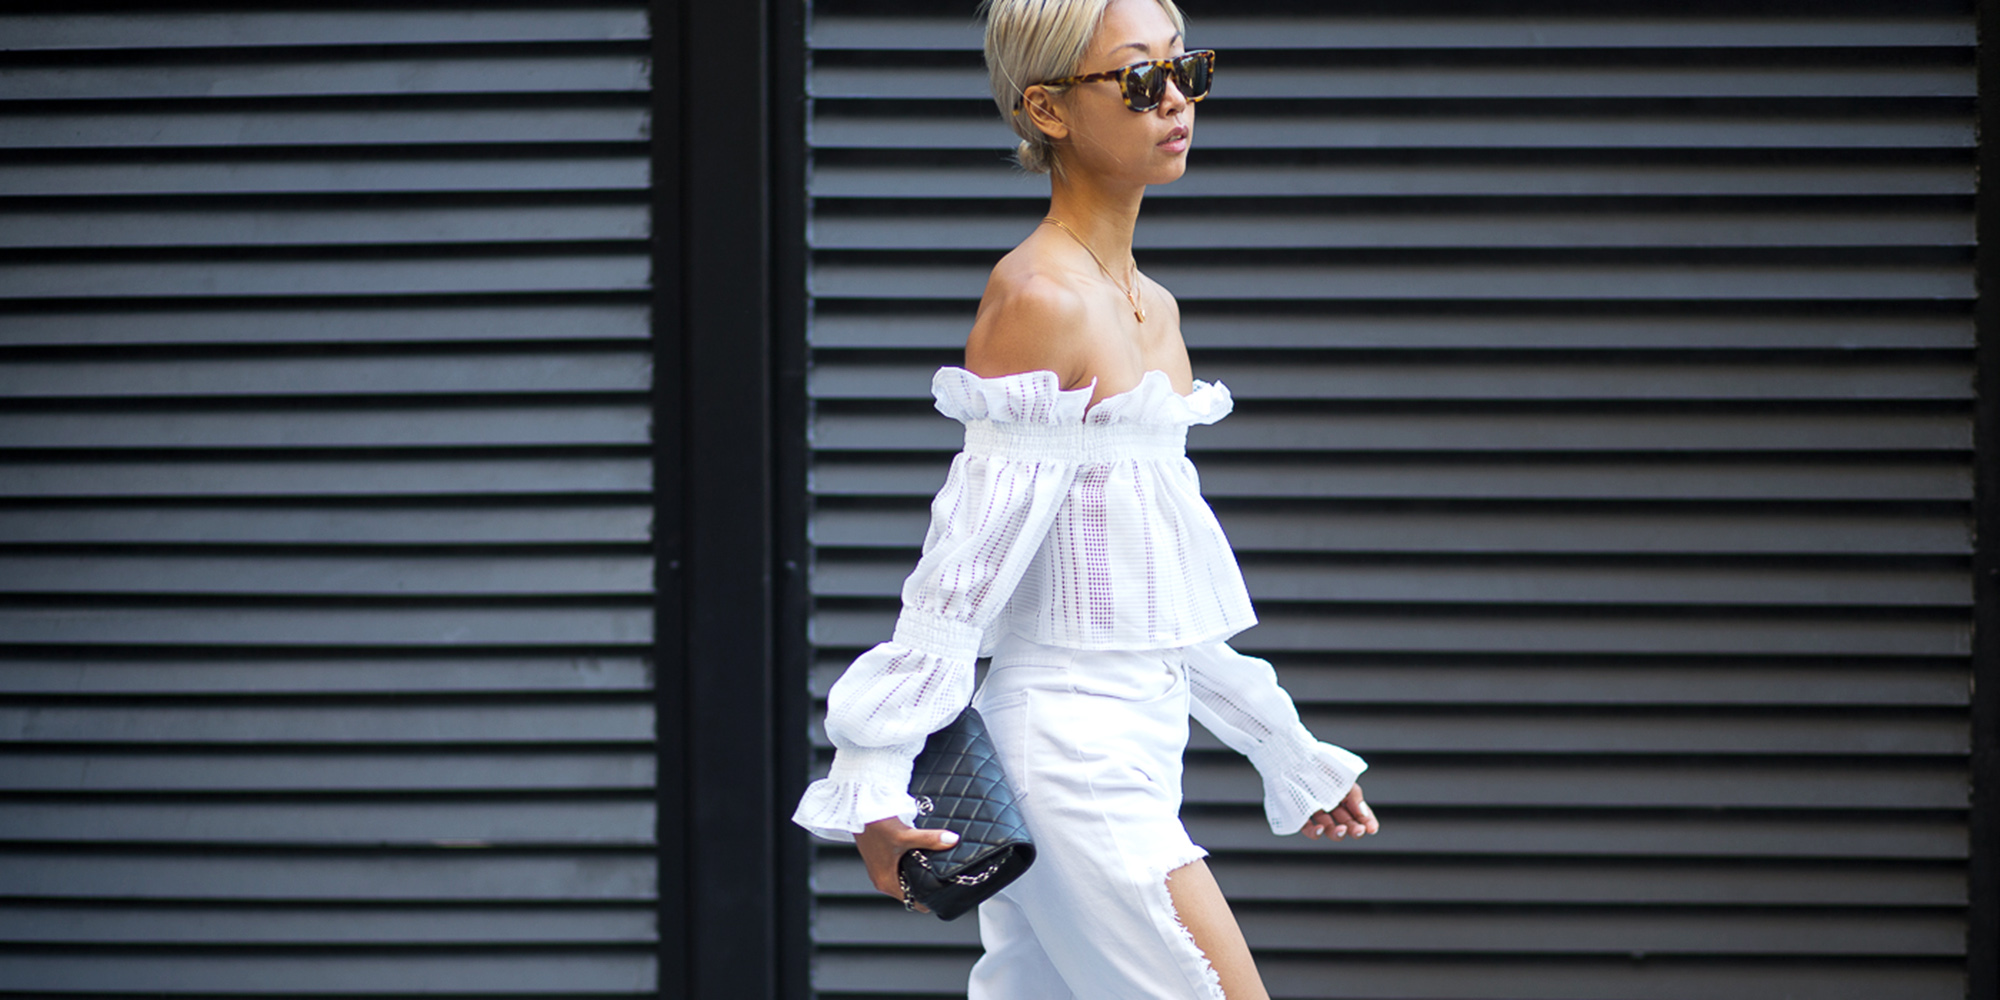 e business and fashion blogging Choose from 40 wordpress fashion themes tags: beauty, blog, business, chic, clothes, ecommerce, feminine, girly, instagram, lifestyle, models.